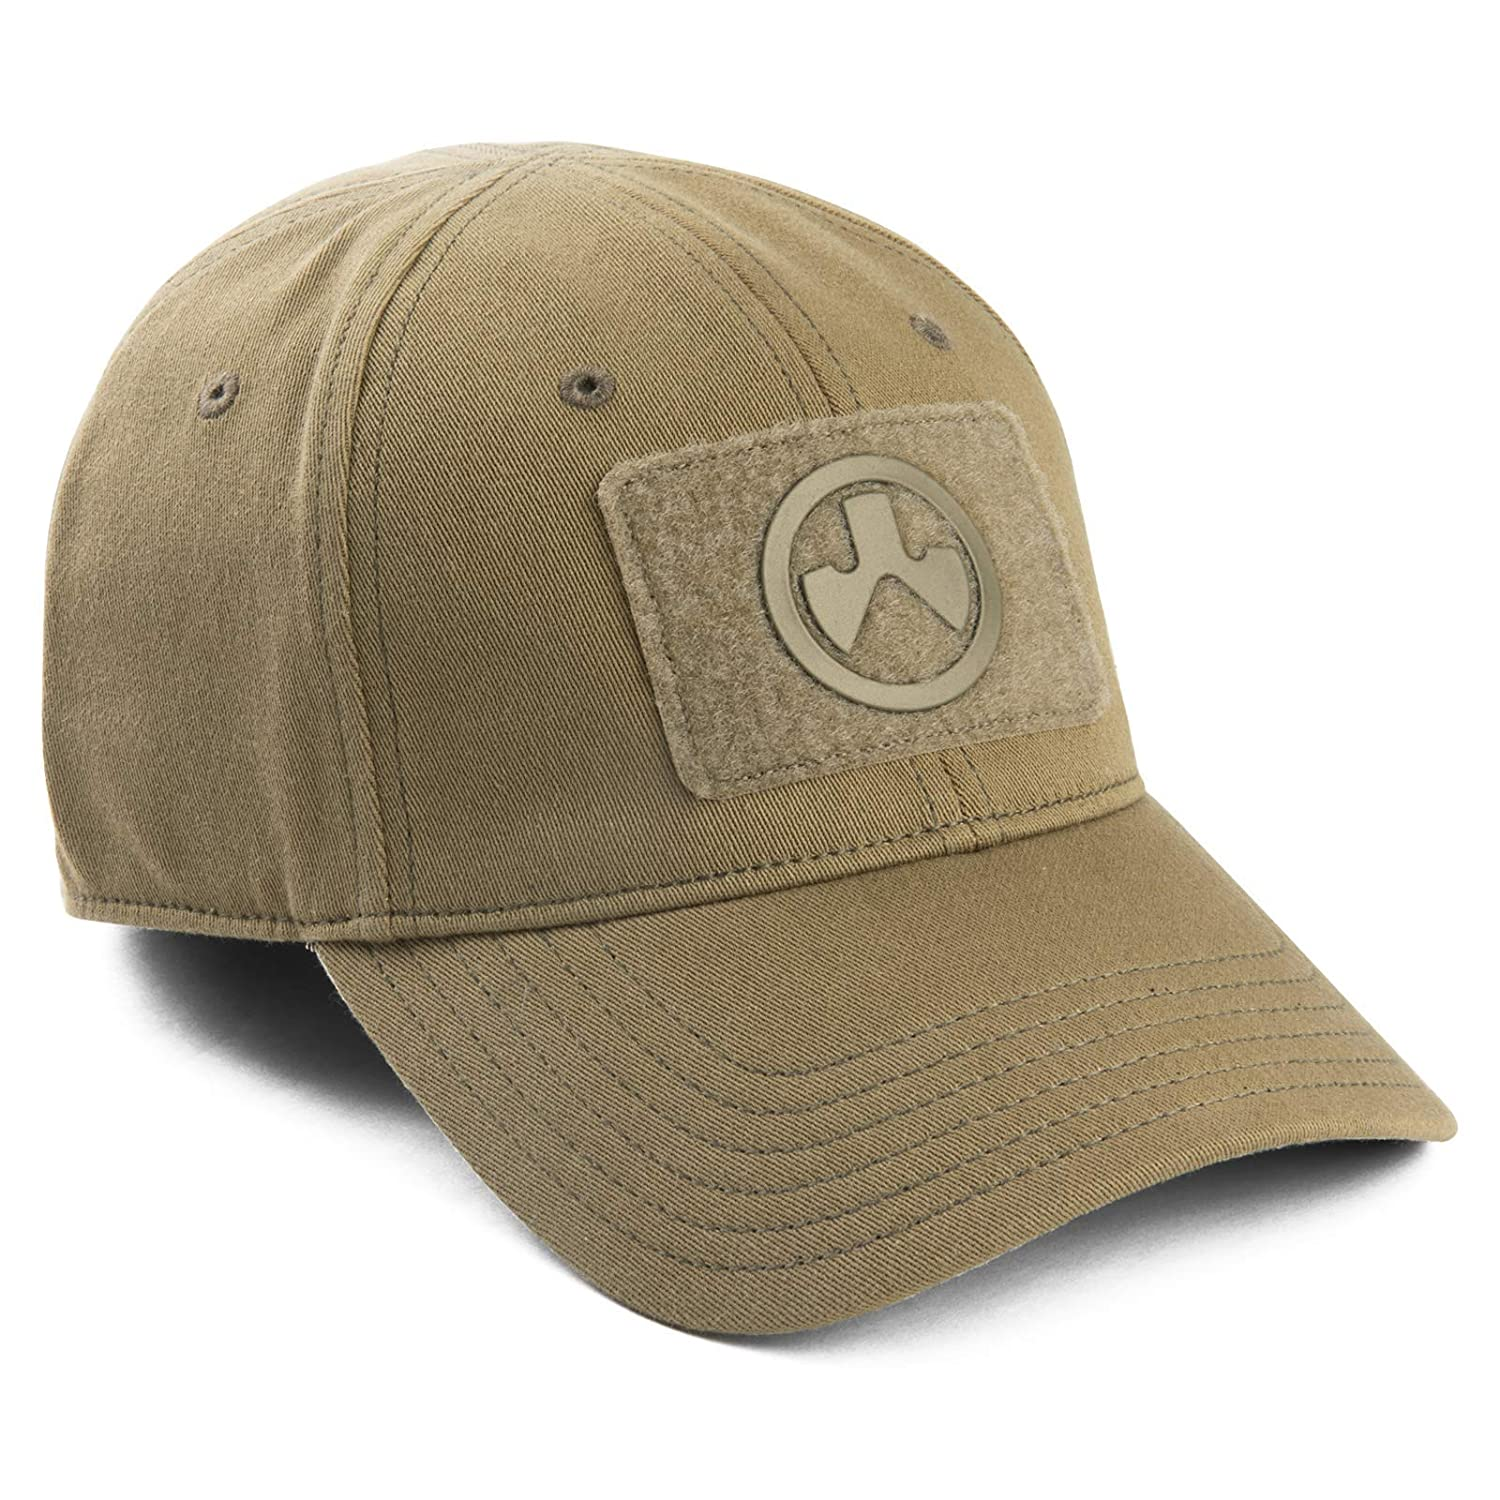 Khaki Magpul Hook /& Loop Patch Core Cover Stretch Fit Baseball Cap Large//X-Large